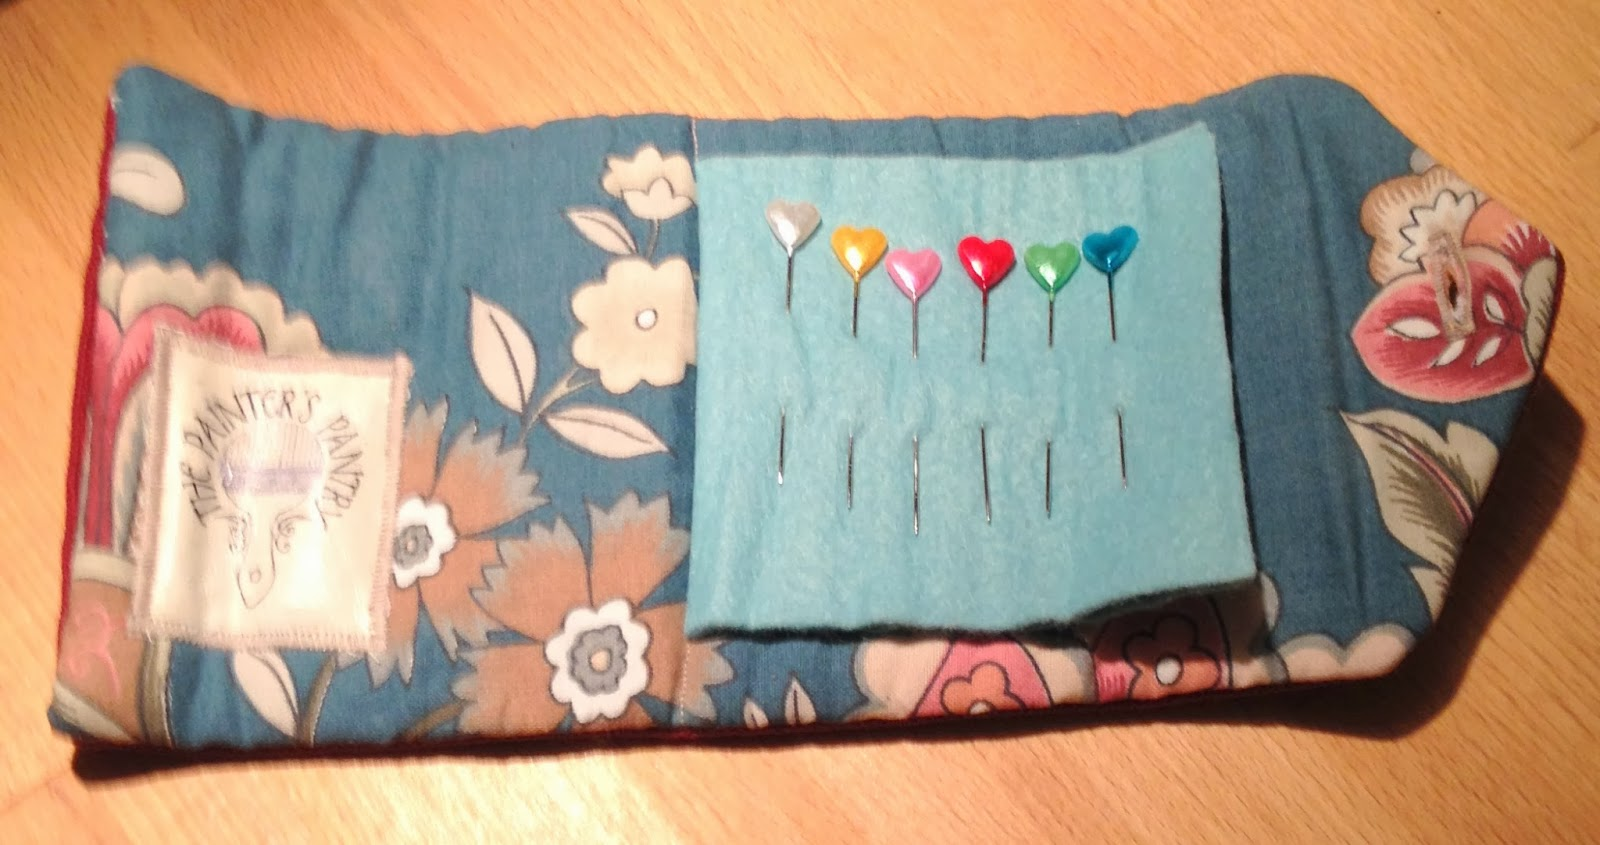 Pins and Needles Wrap made from upcycled material